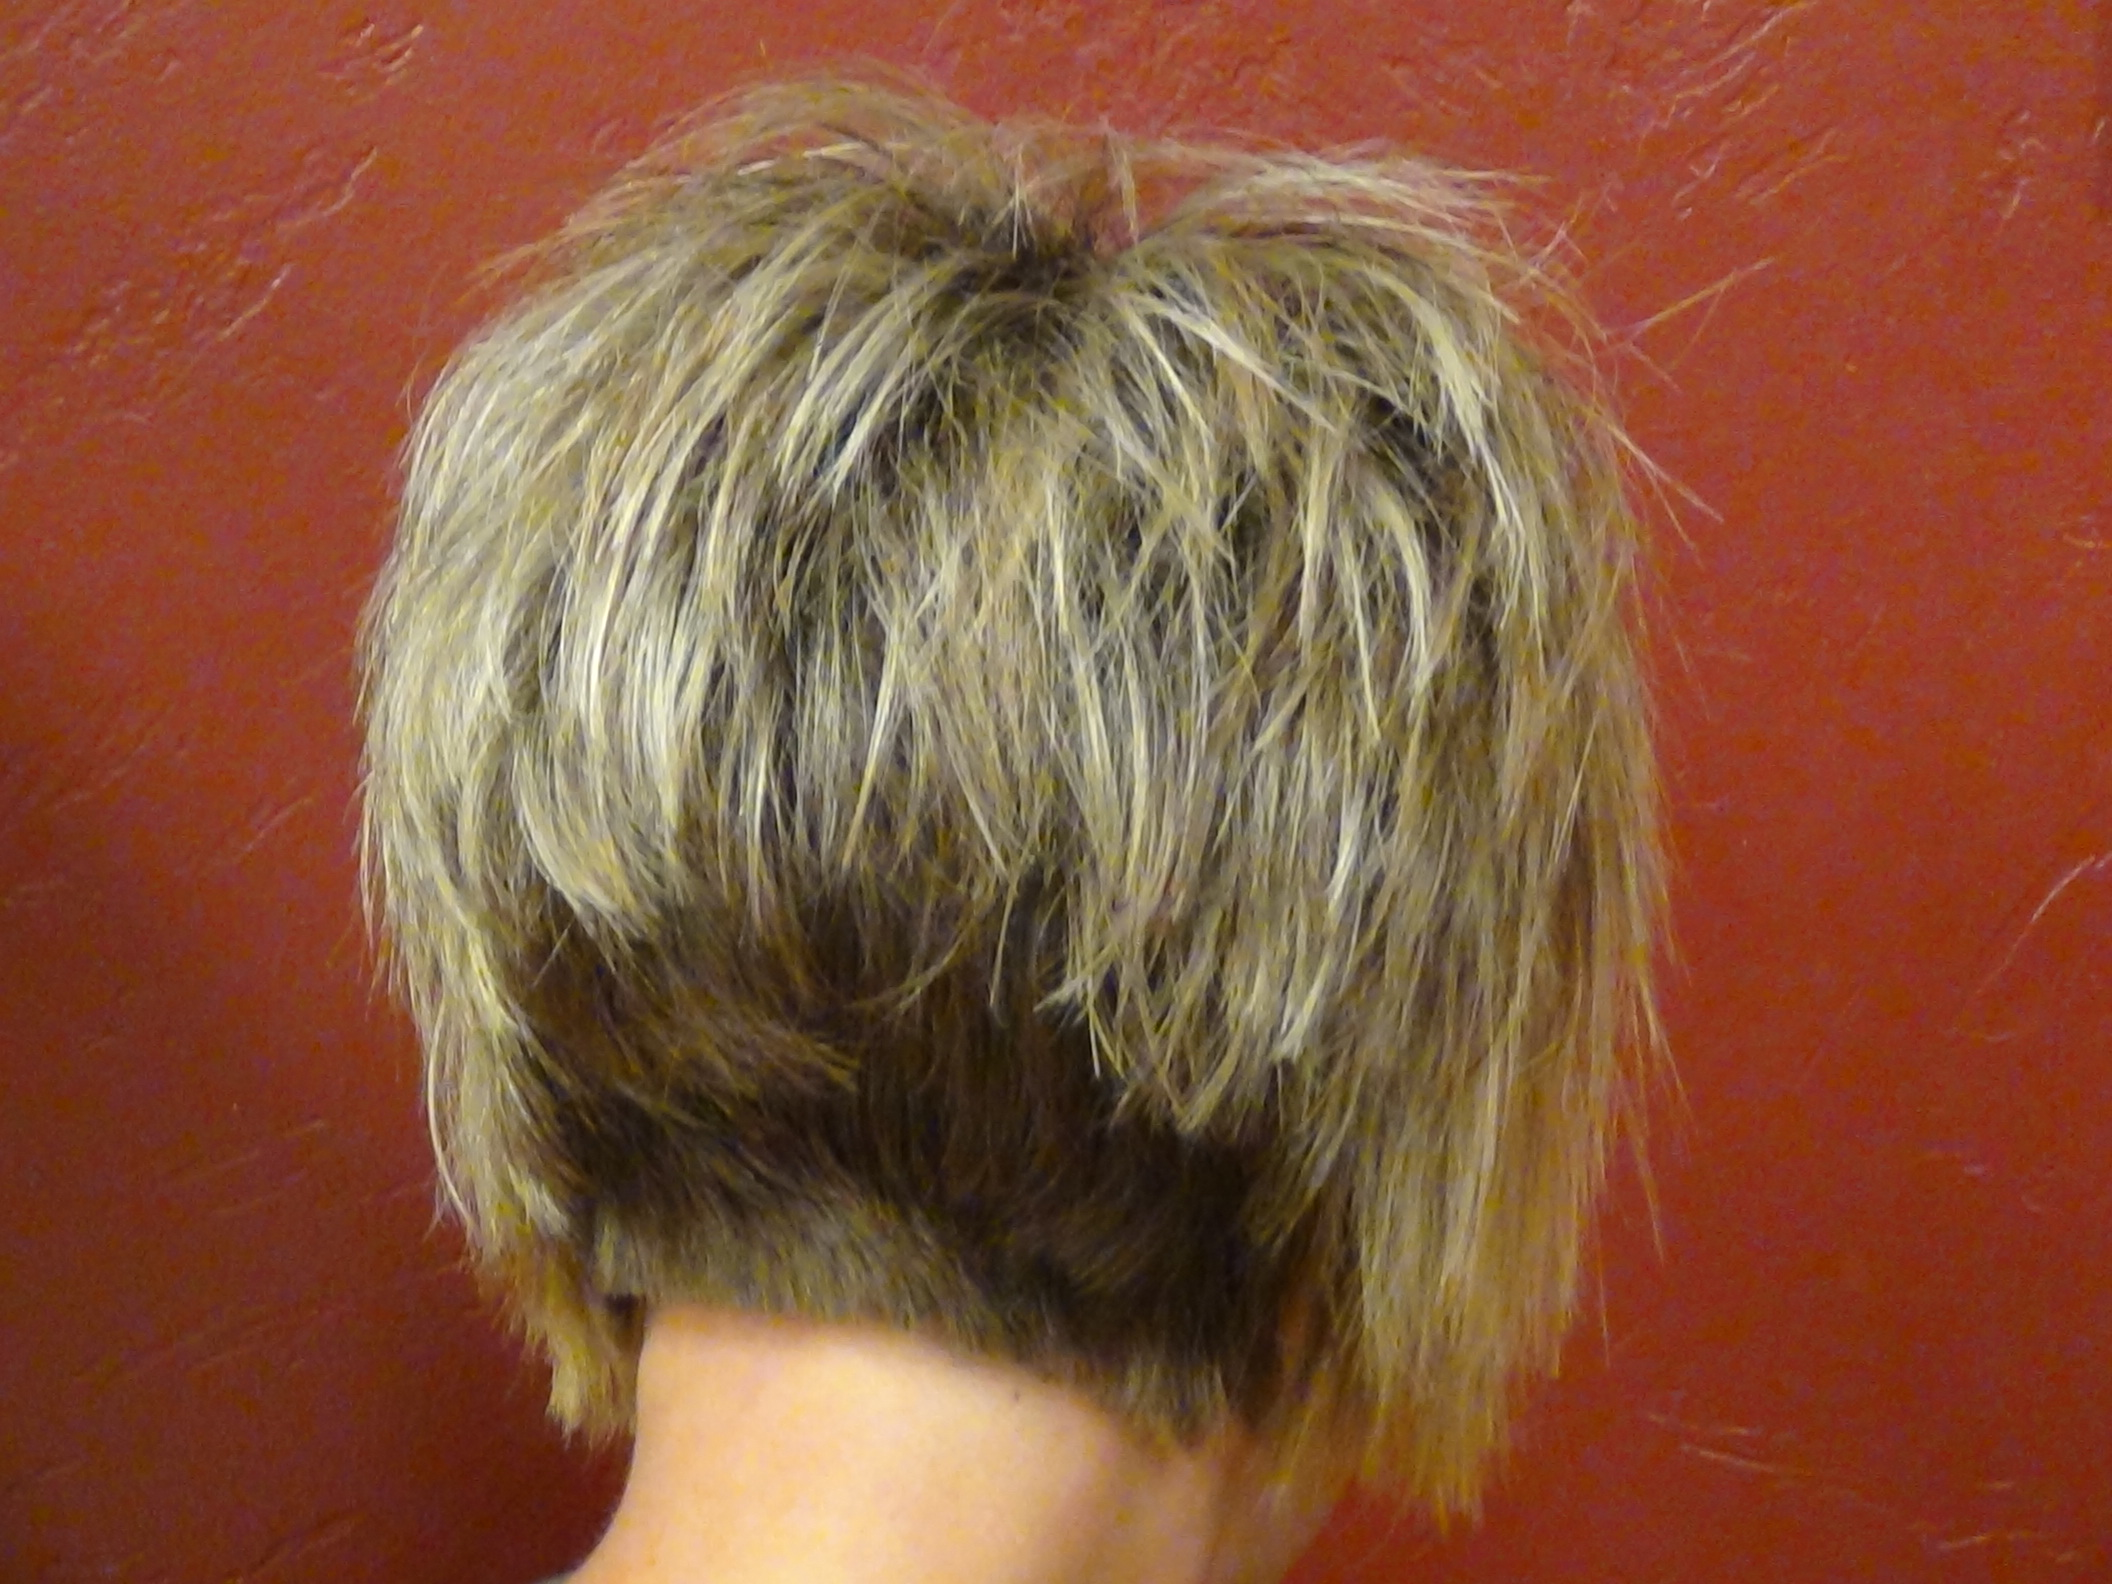 stacked haircut with straight bangs - learn more today